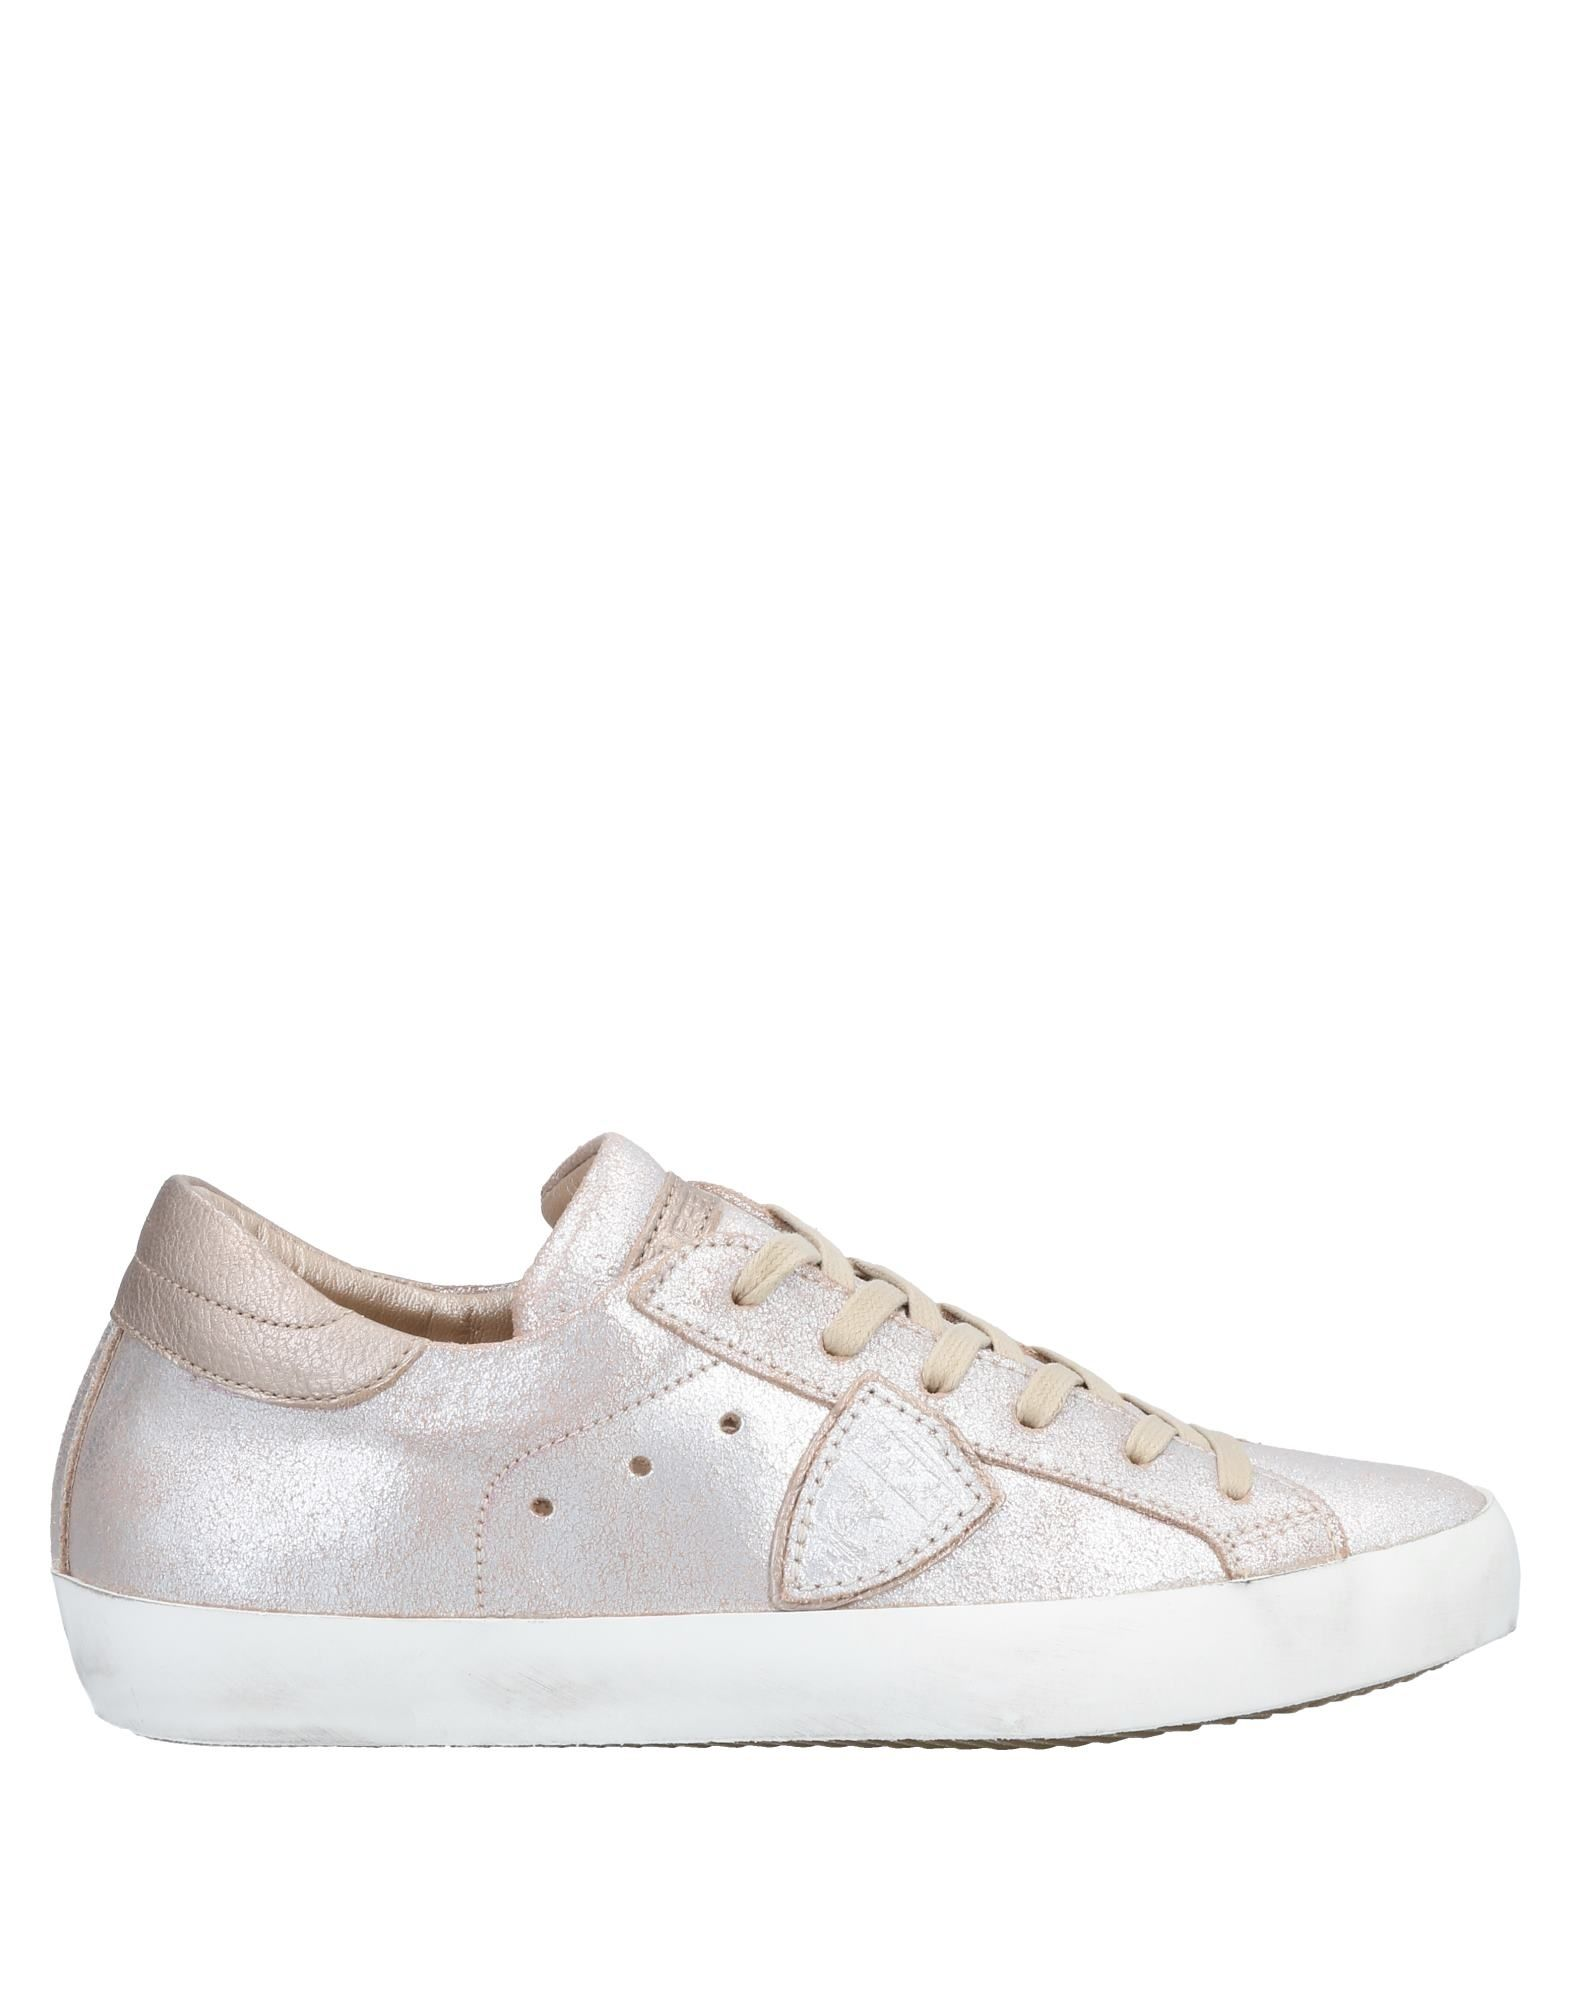 Philippe on Model Sneakers - Women Philippe Model Sneakers online on Philippe  Canada - 11568616OA d272f3